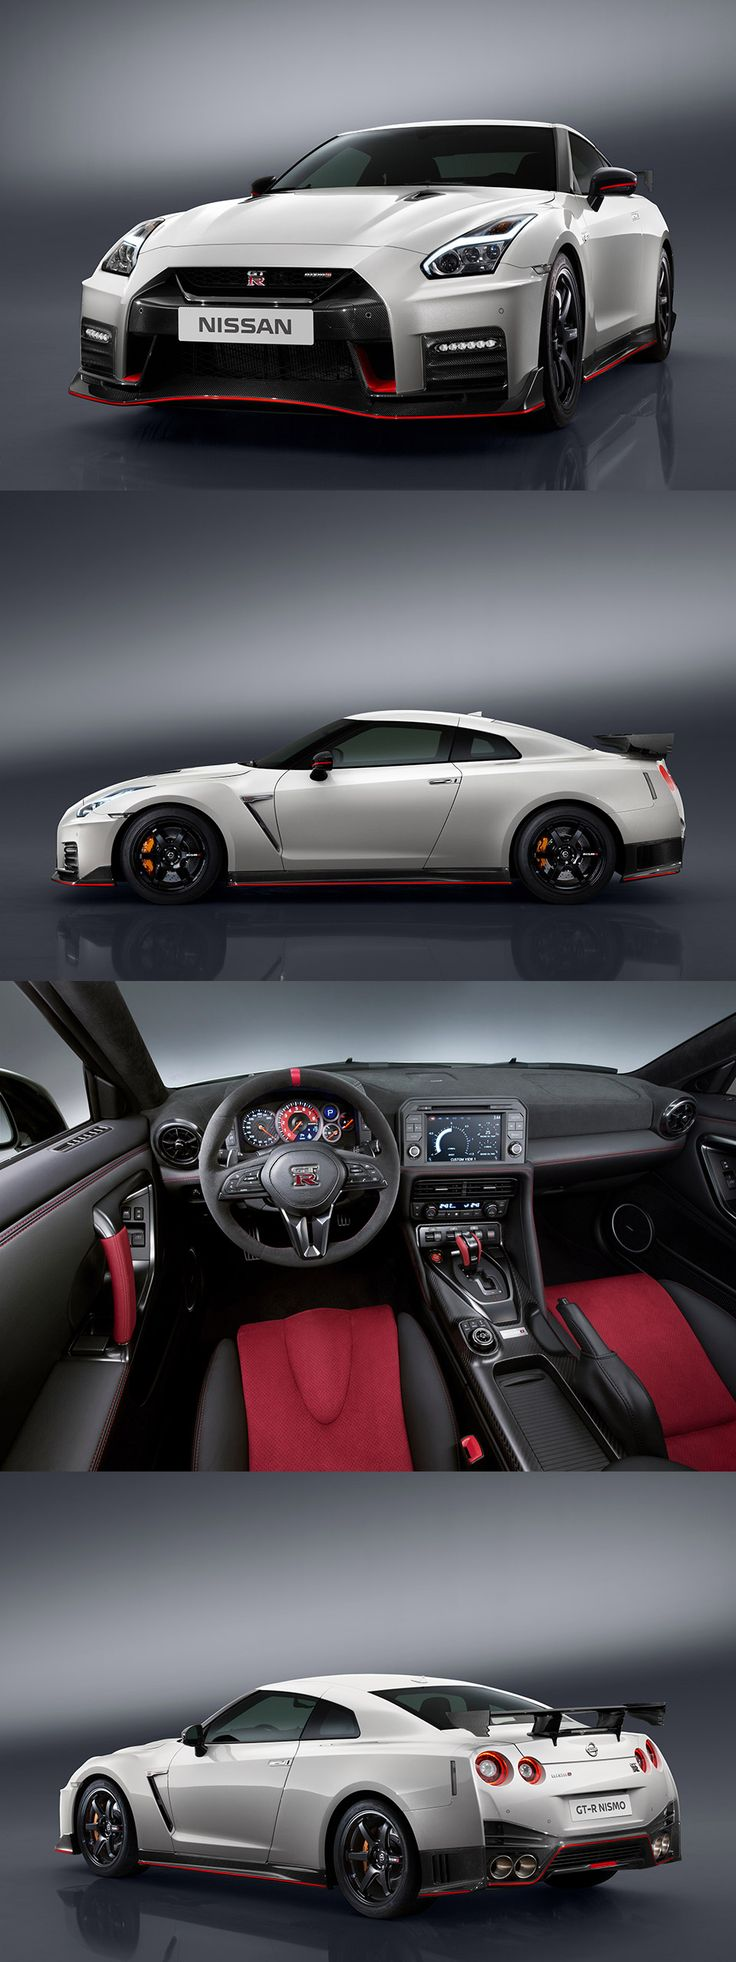 2017 Nissan GT-R Nismo https://www.amazon.co.uk/Baby-Car-Mirror-Shatterproof-Installation/dp/B06XHG6SSY/ref=sr_1_2?ie=UTF8&qid=1499074433&sr=8-2&keywords=Kingseye